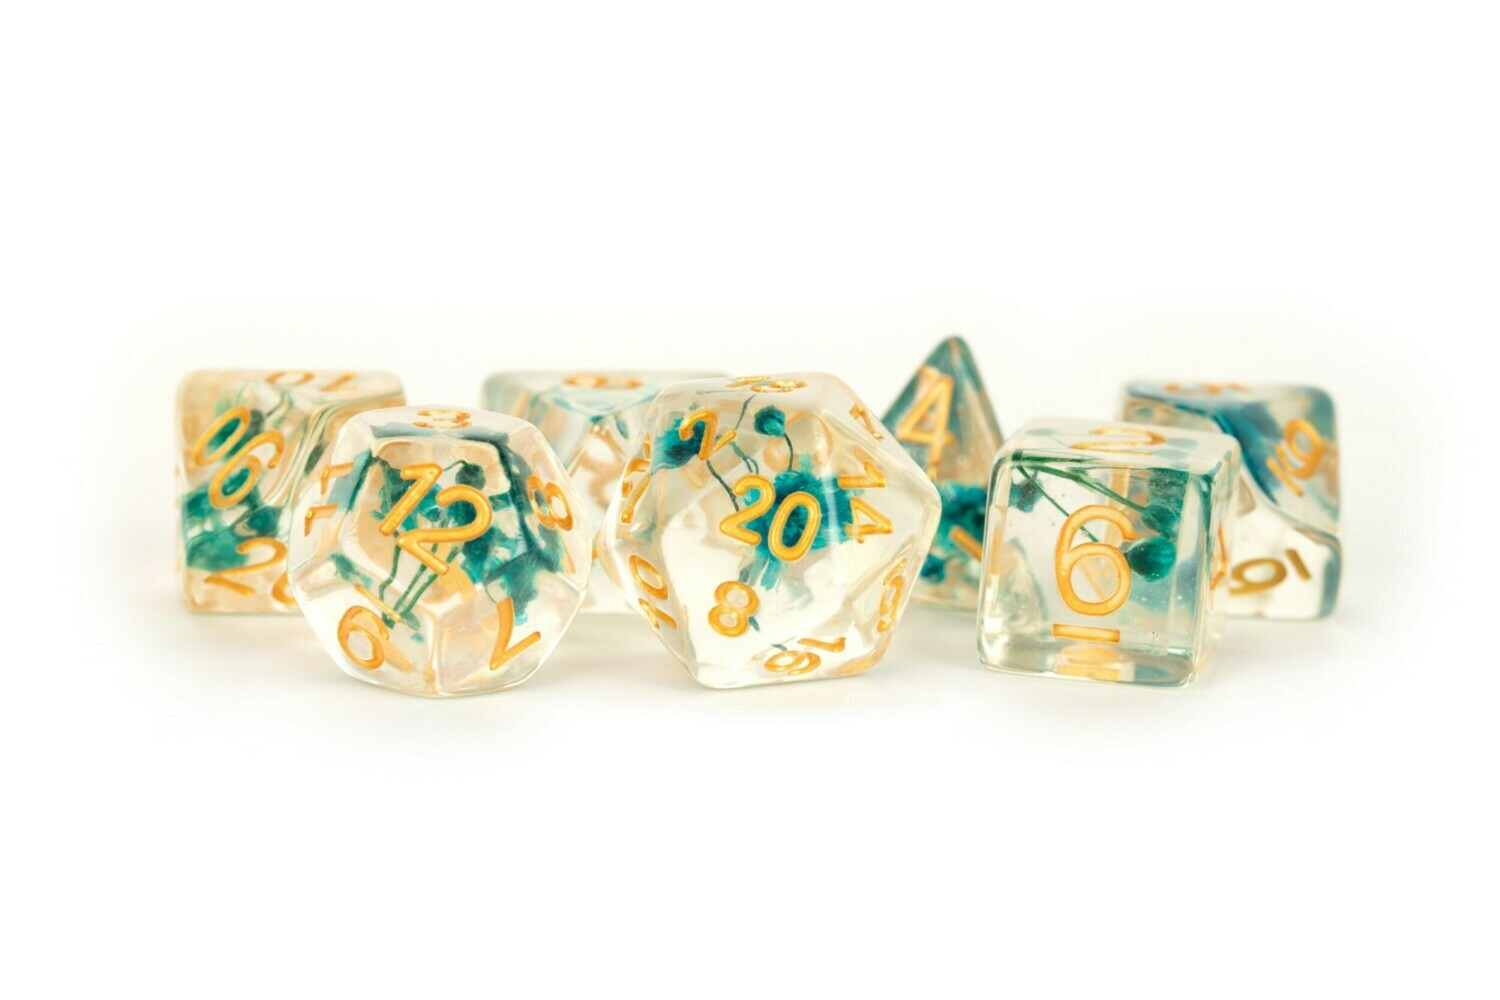 Baby's Breath Green Flowers Clear w/ Gold Numbers 16mm Resin Poly Dice Set Tabletop RPG CCG Gaming Roleplay